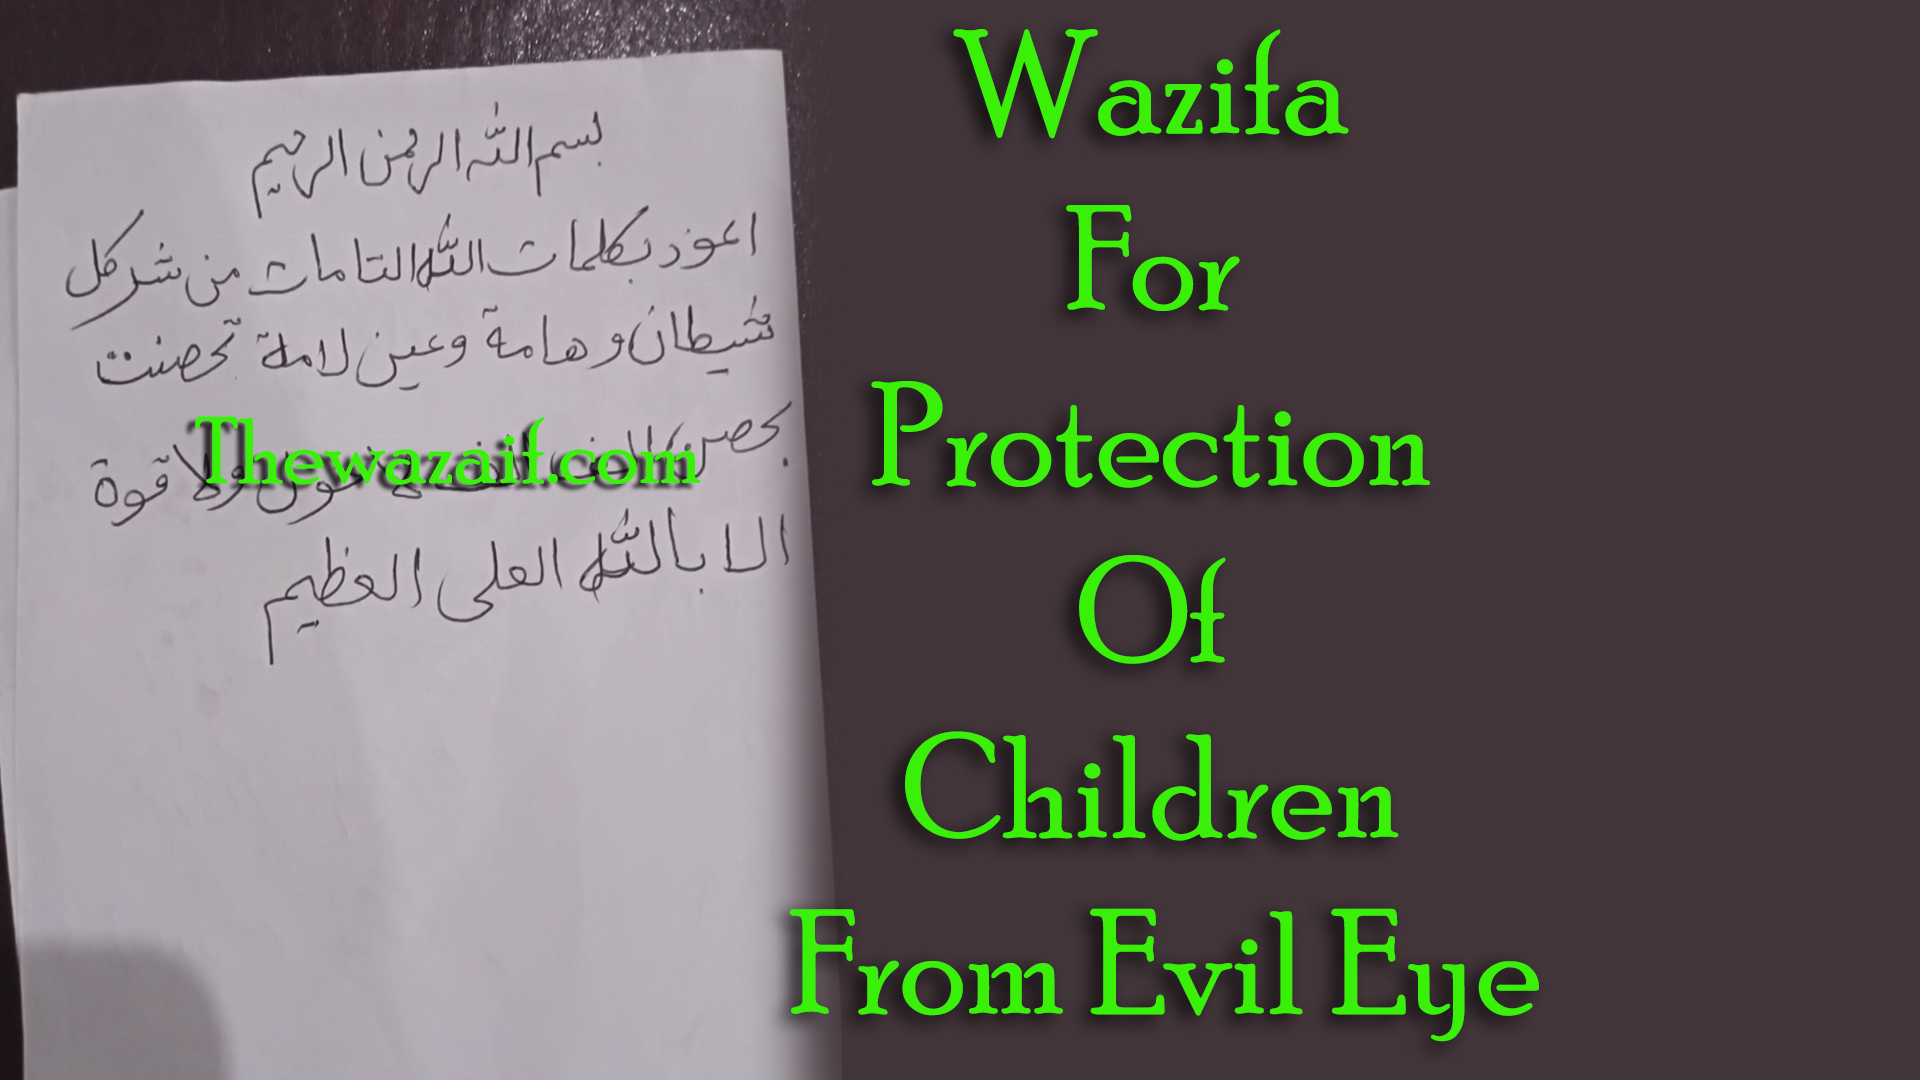 Islamic Wazifa For Protection Of Children From Evil Eye